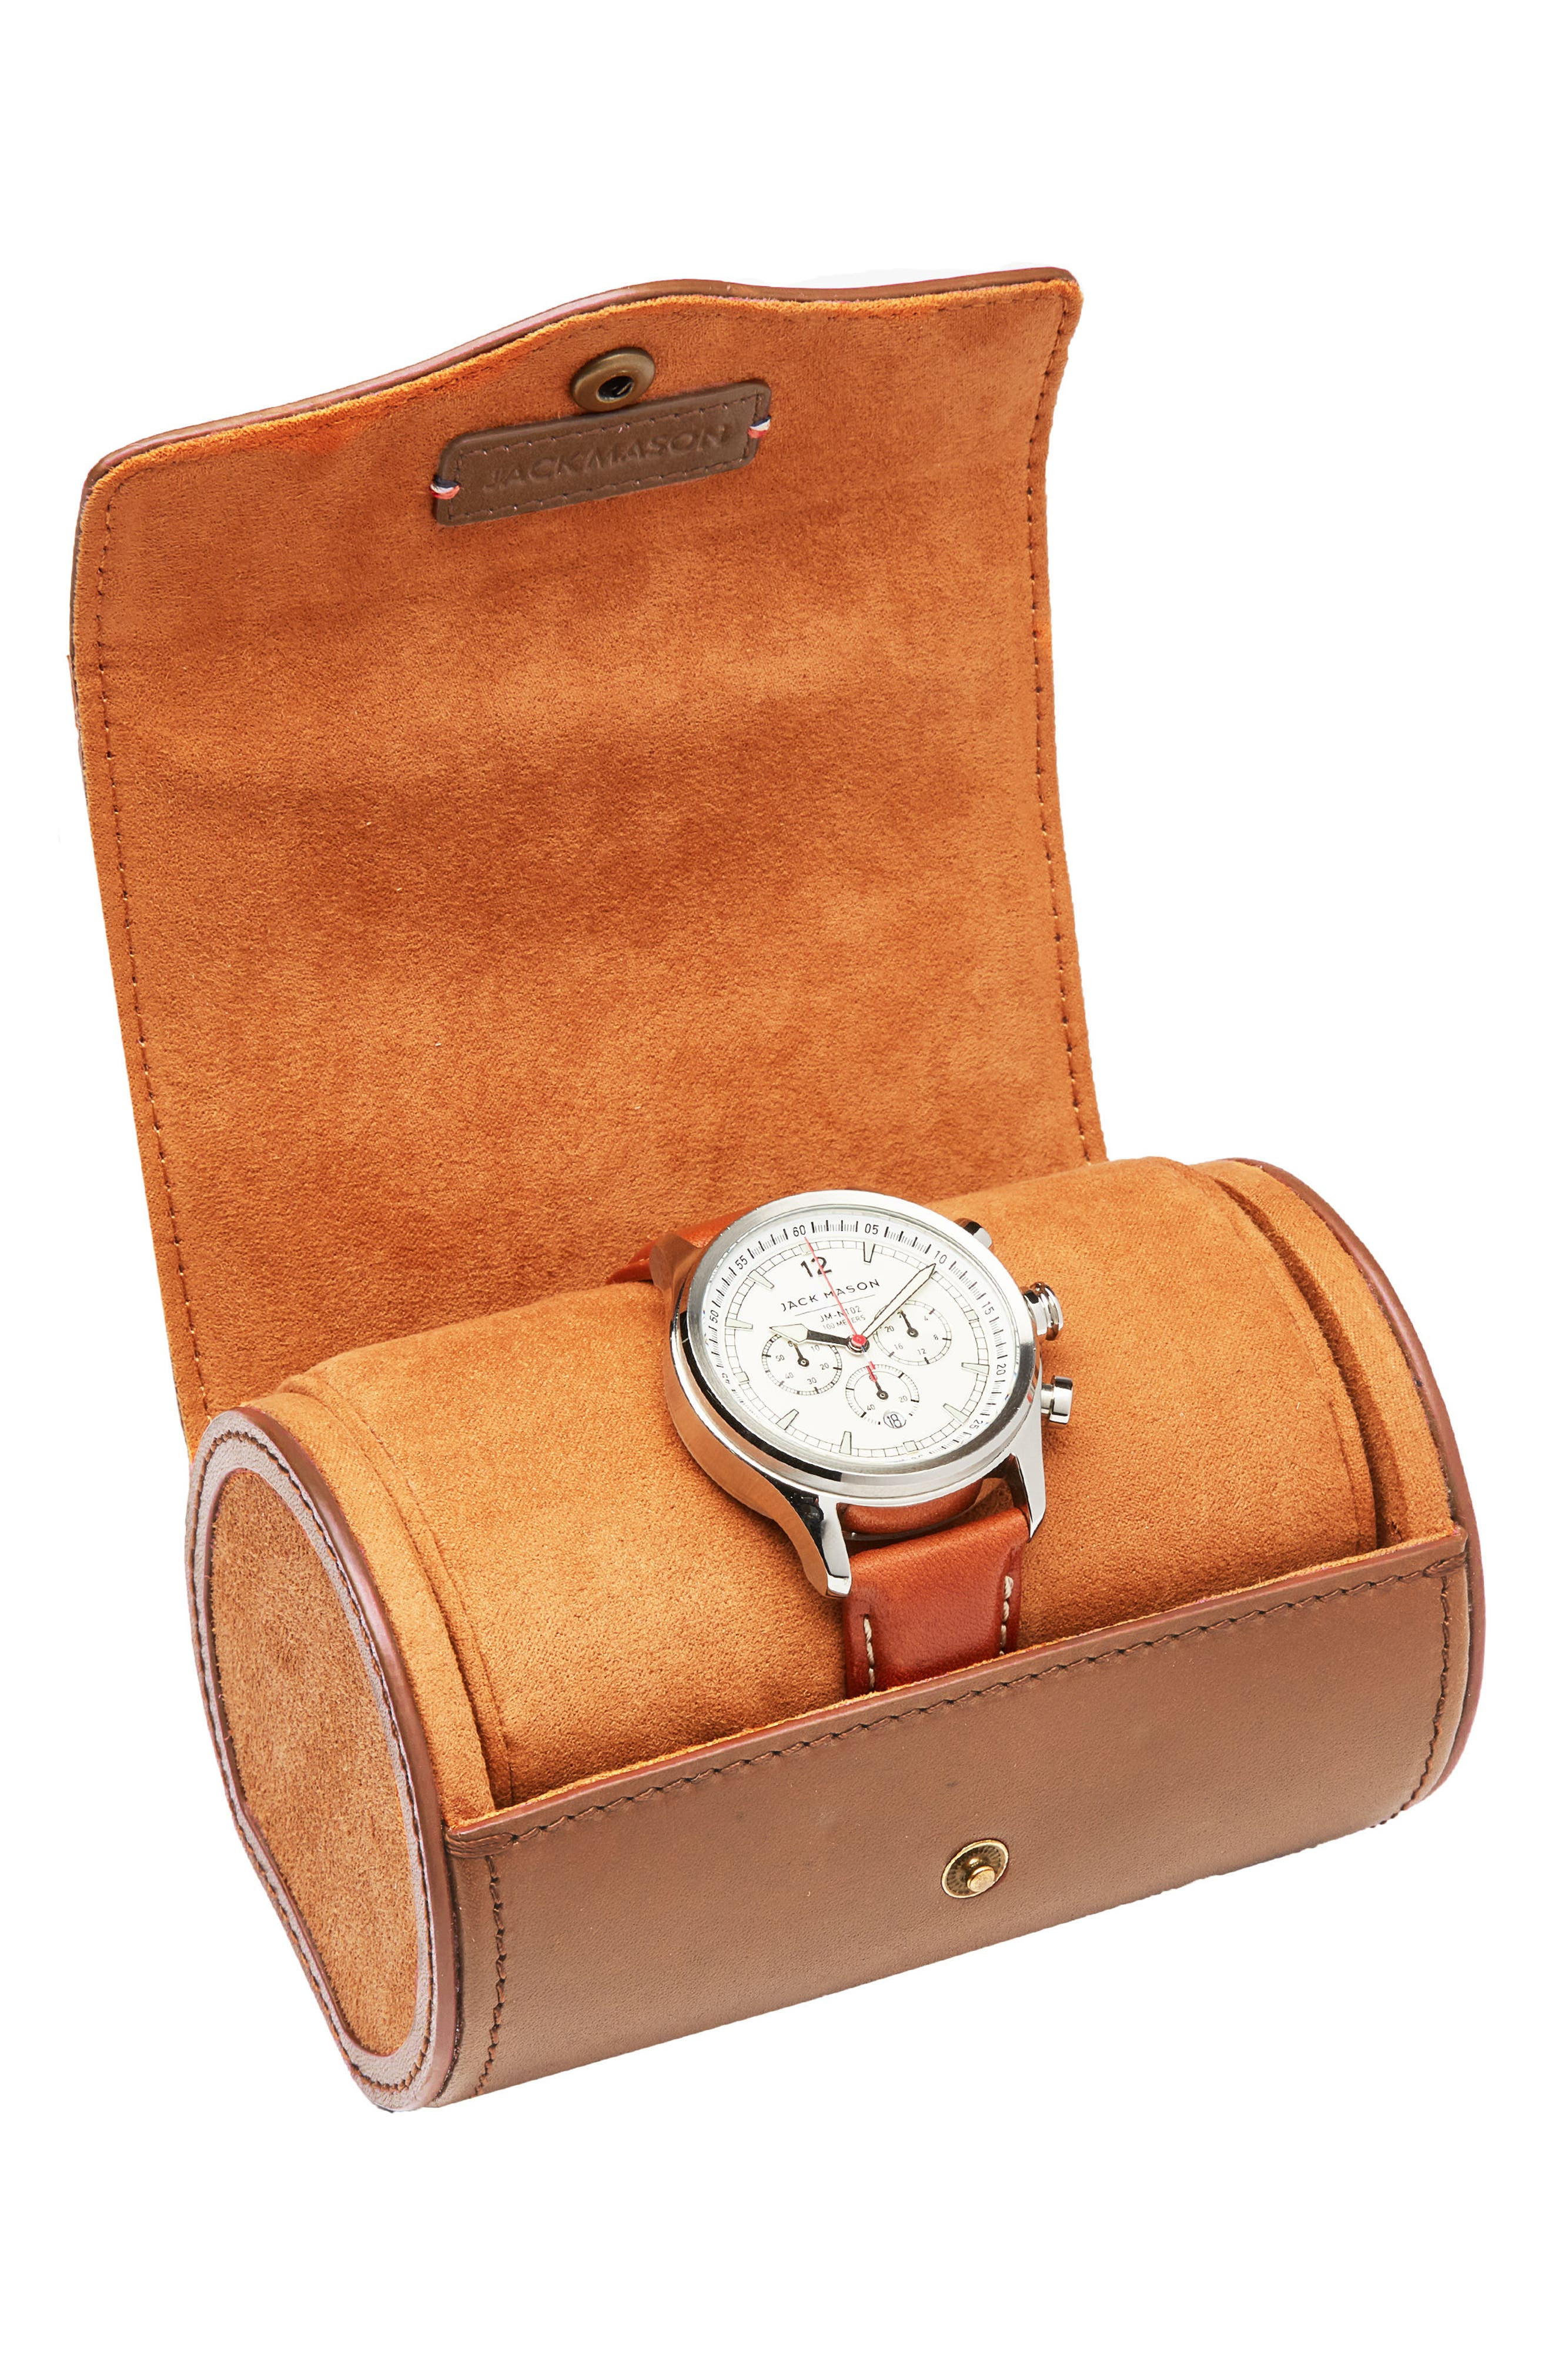 Watch Roll Case,                             Alternate thumbnail 5, color,                             Tan